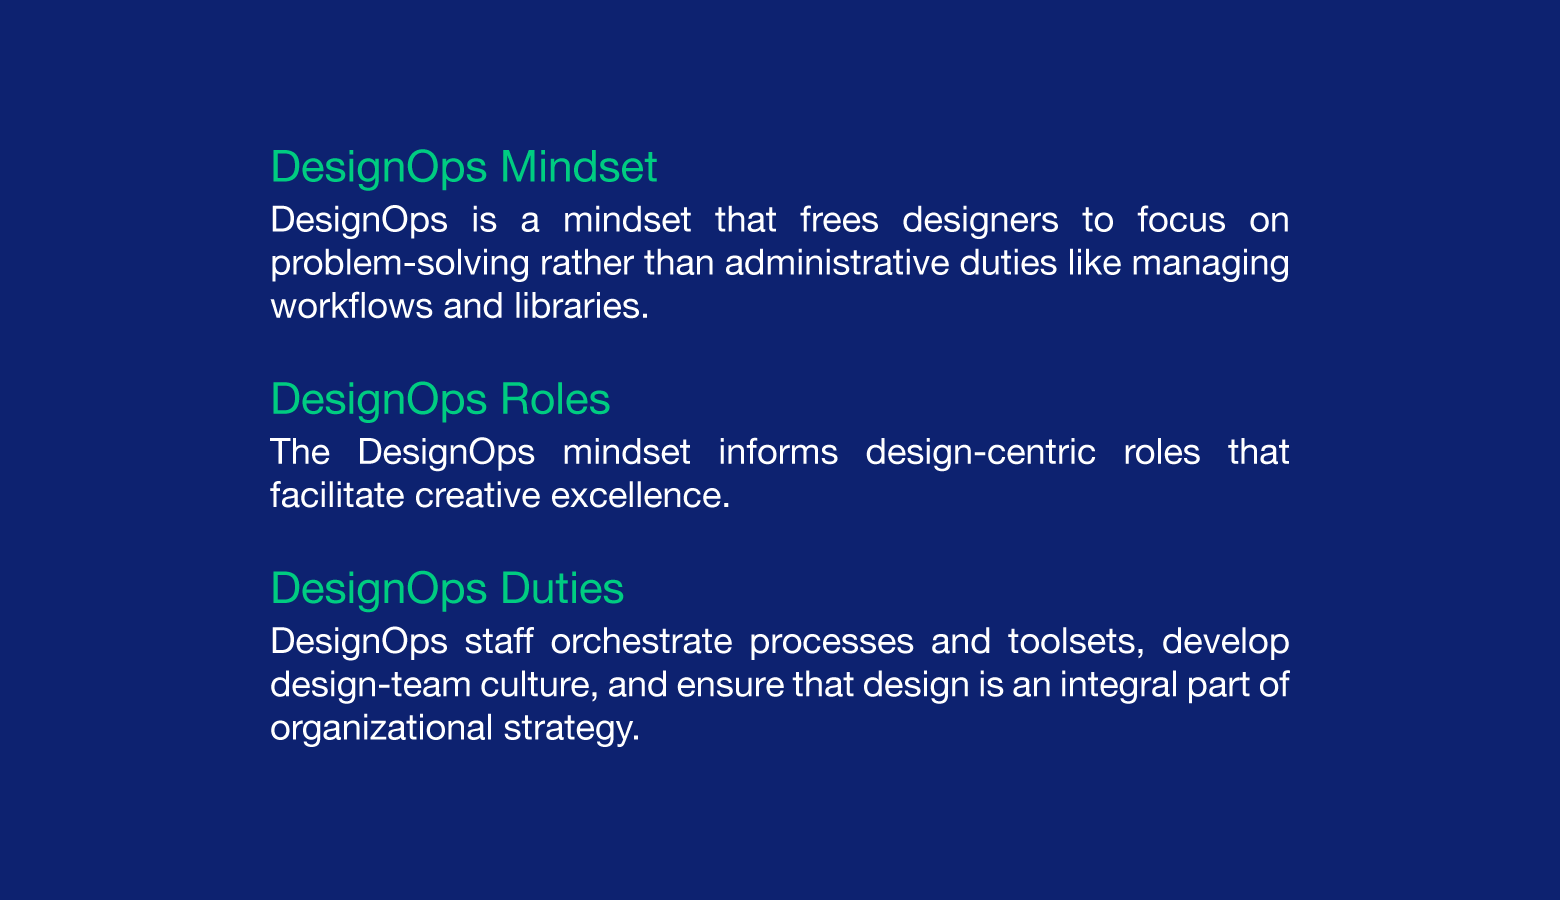 DesignOps is a mindset from which flows roles, duties, and processes.